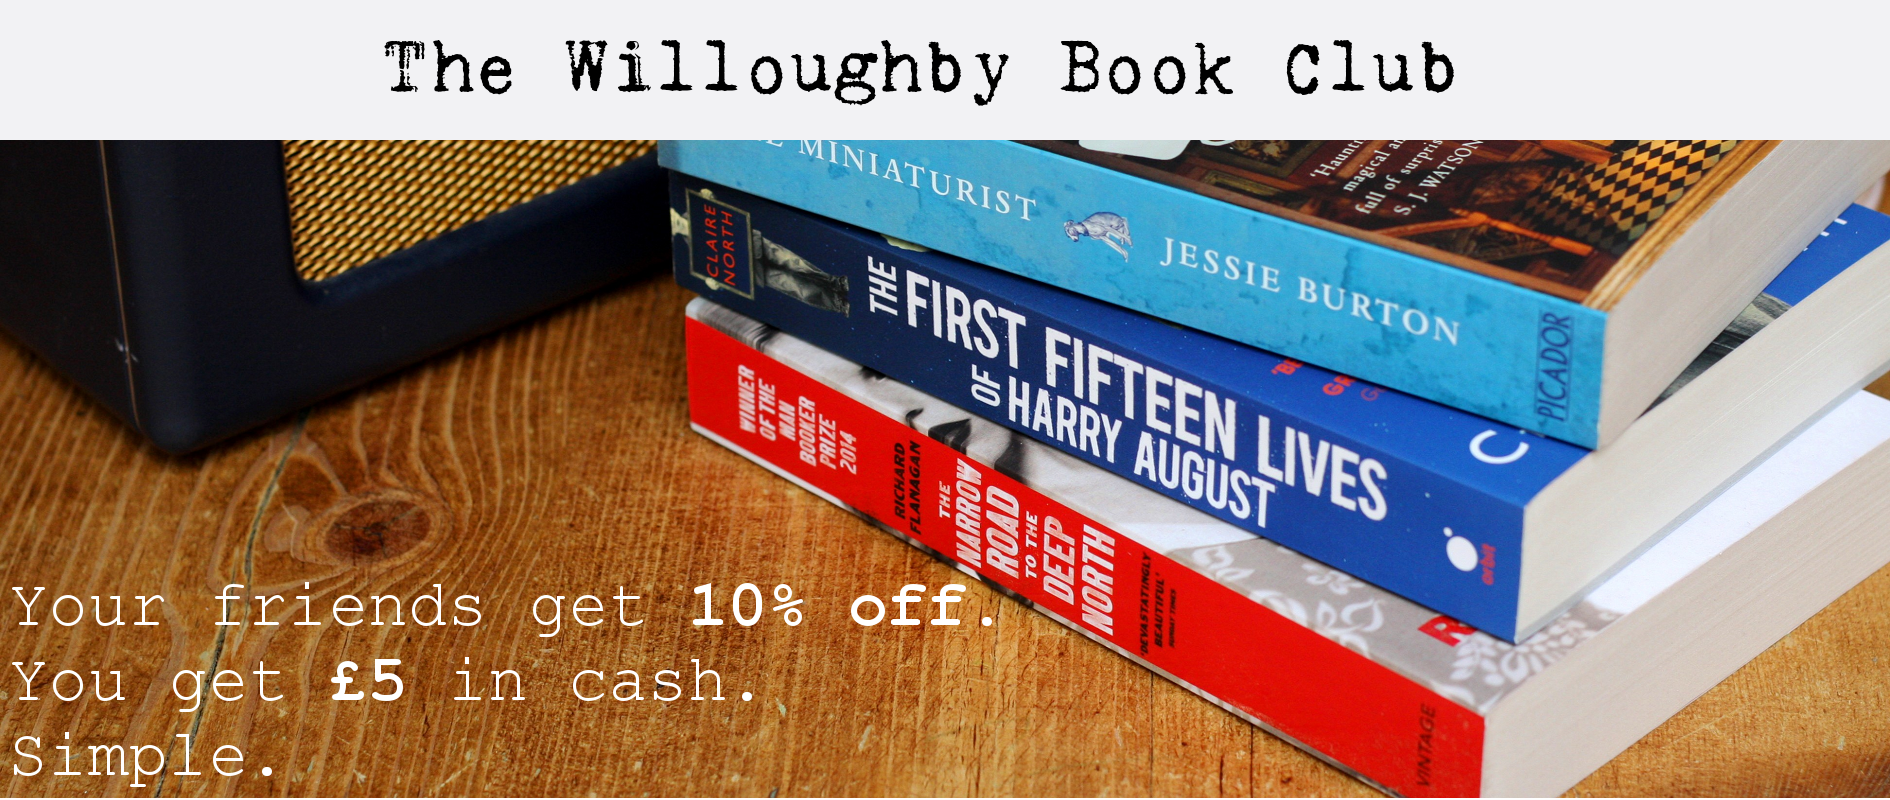 The Willoughby Book Club Referral Program